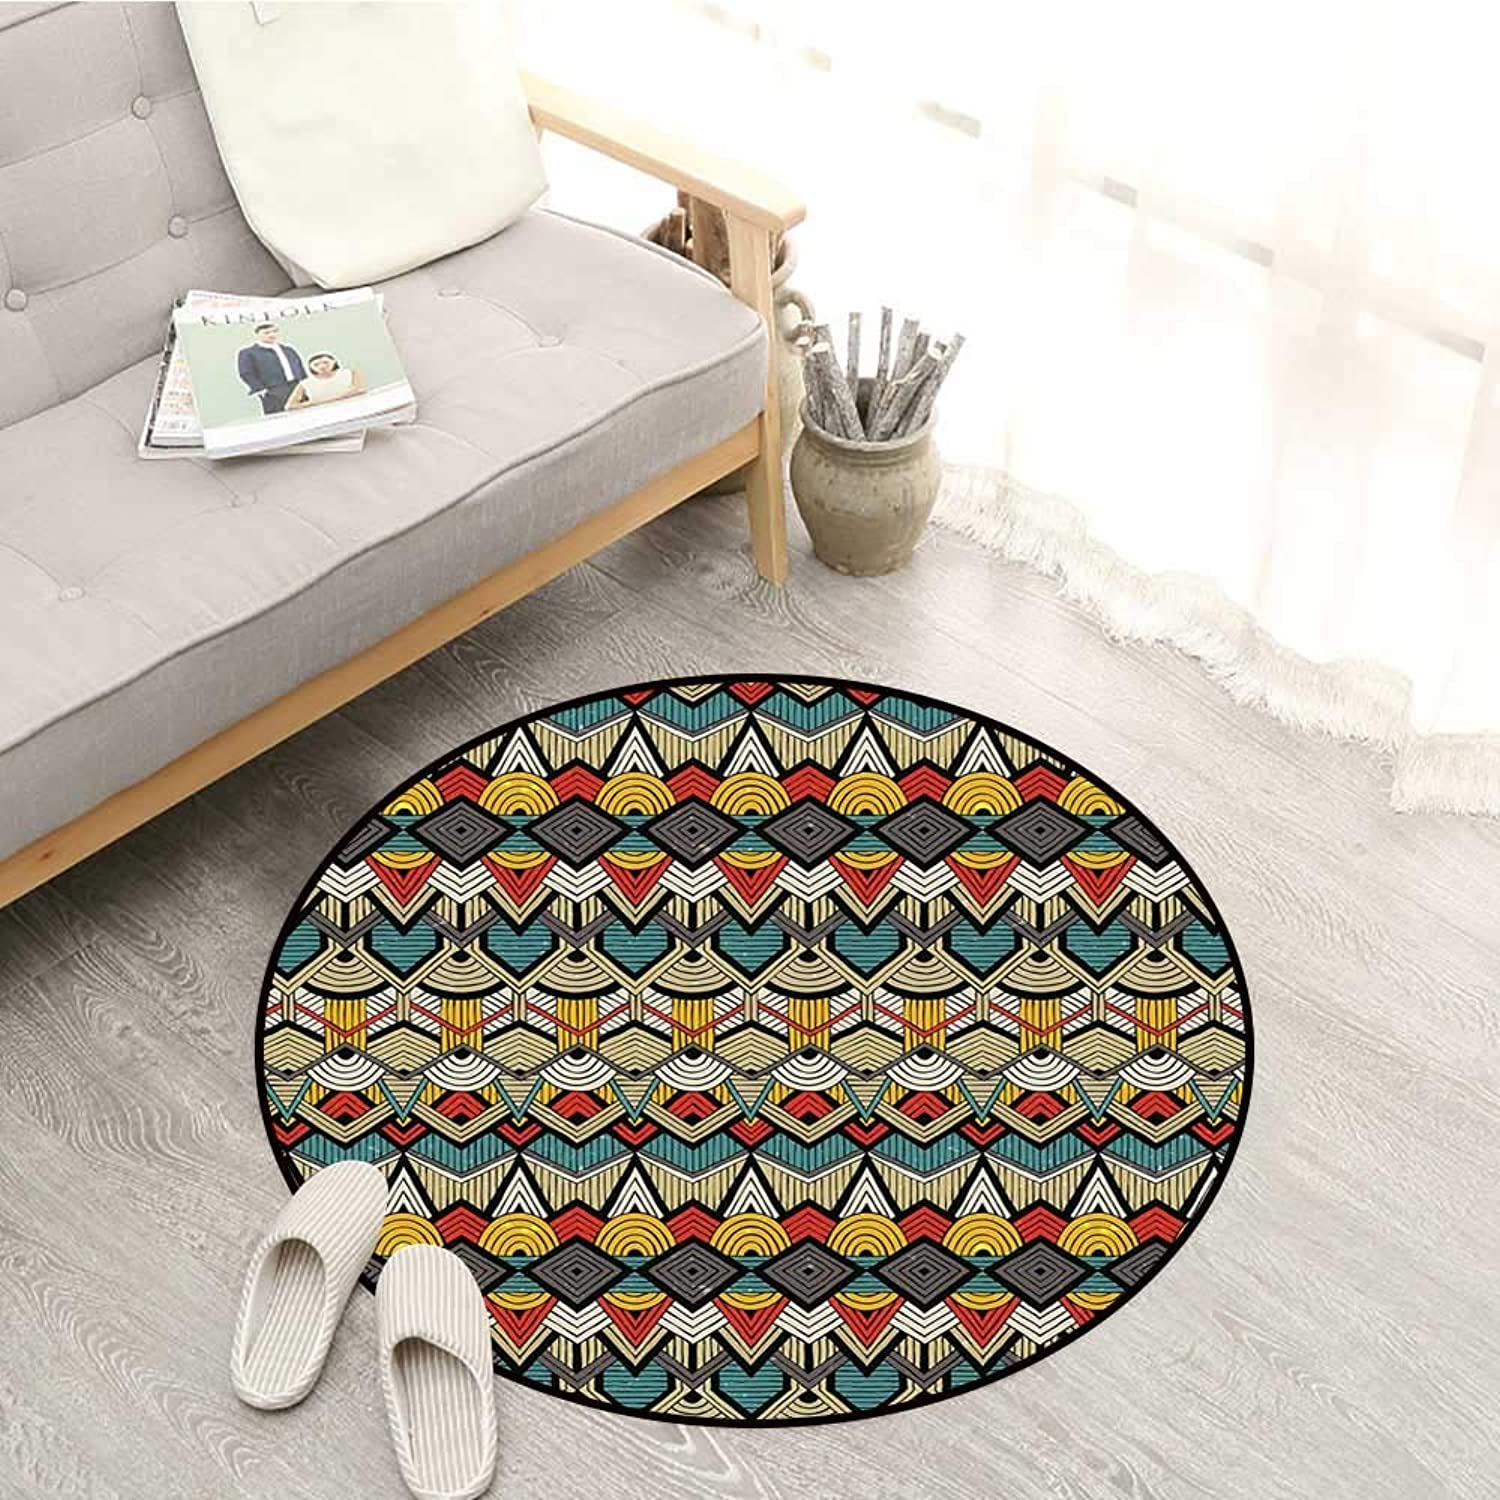 African Carpets Tribal Chevron Zigzags and Half Circles Folkloric Elements Sharp Canonical Motifs Sofa Coffee Table Mat 4'3  Multicolor